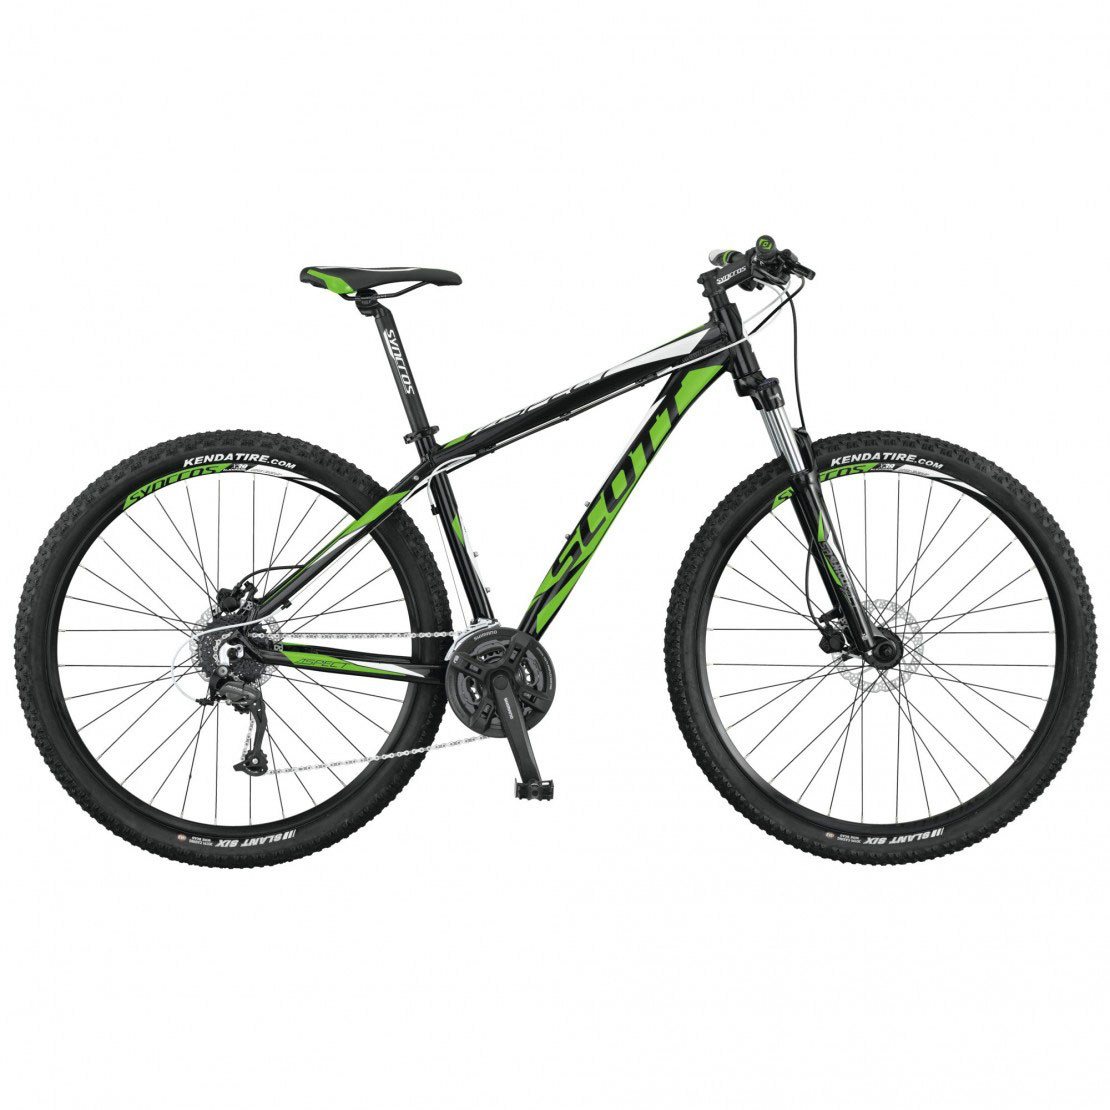 Scott Aspect 950 2015 - 29er Hardtail Mountain Bike | 29er Mountain ...